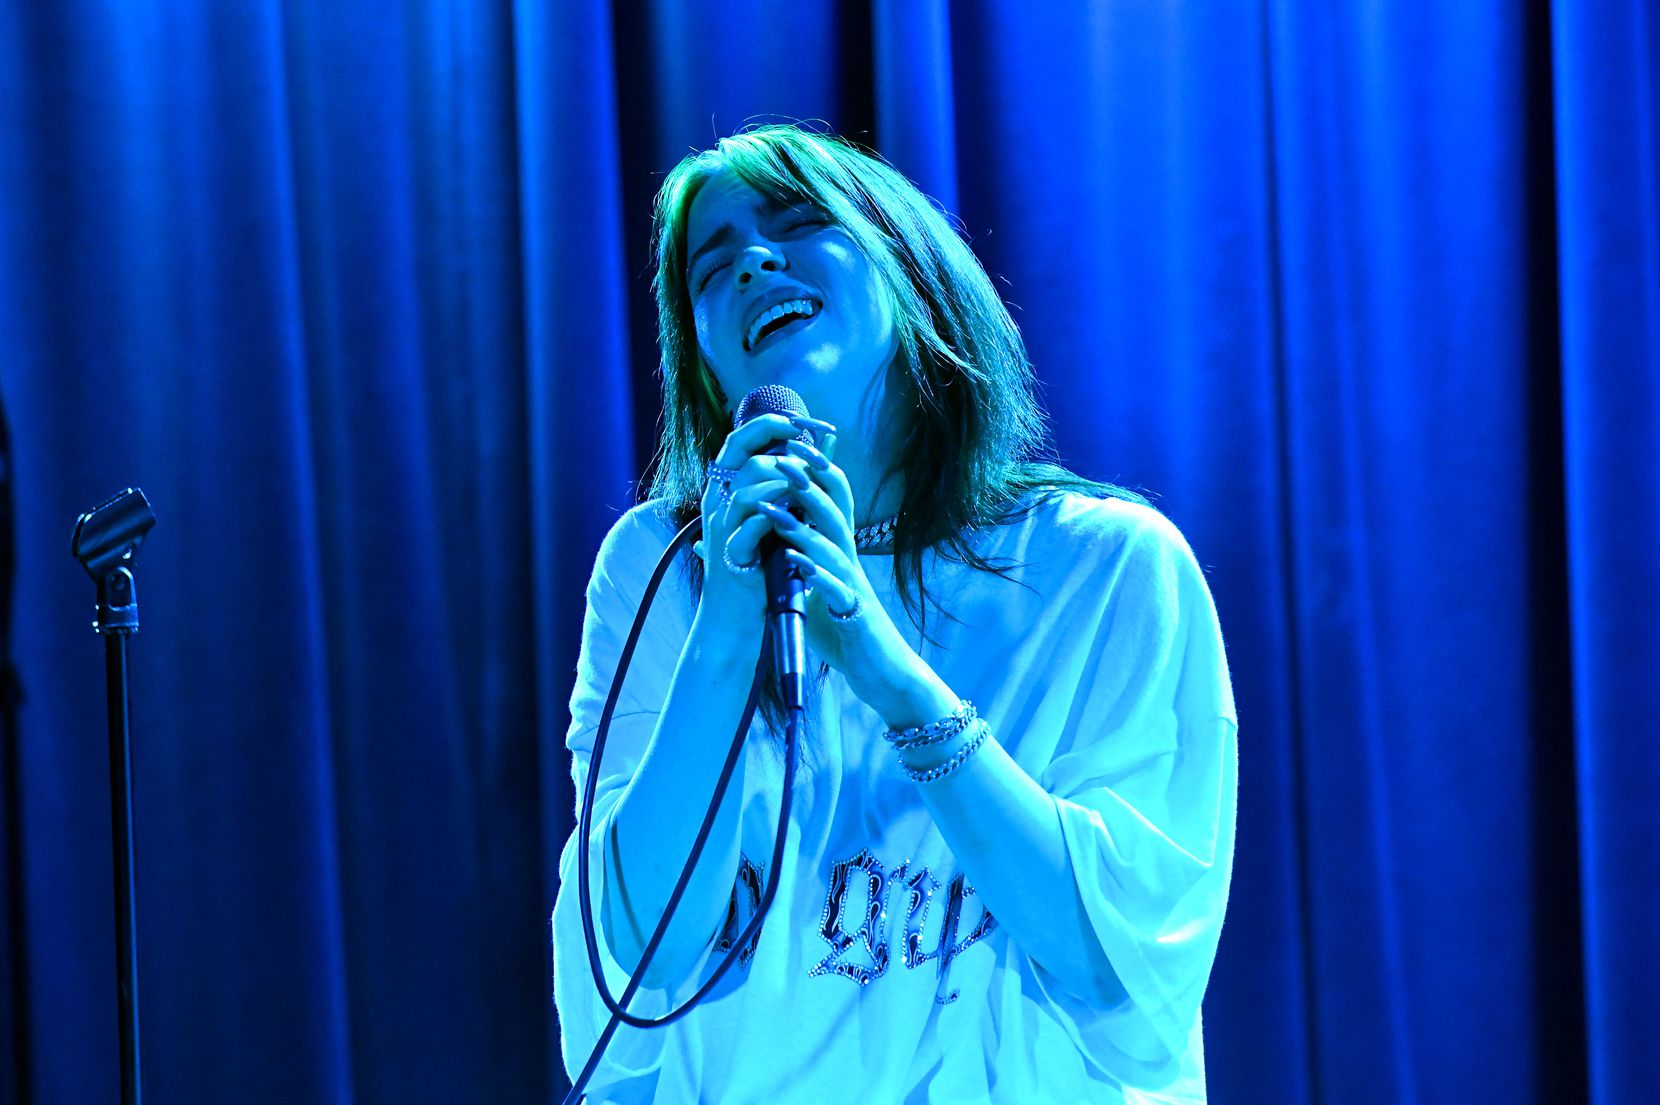 Singer Billie Eilish performs onstage at the Grammy Museum, which hosts concerts in addition to being a top-notch music museum.